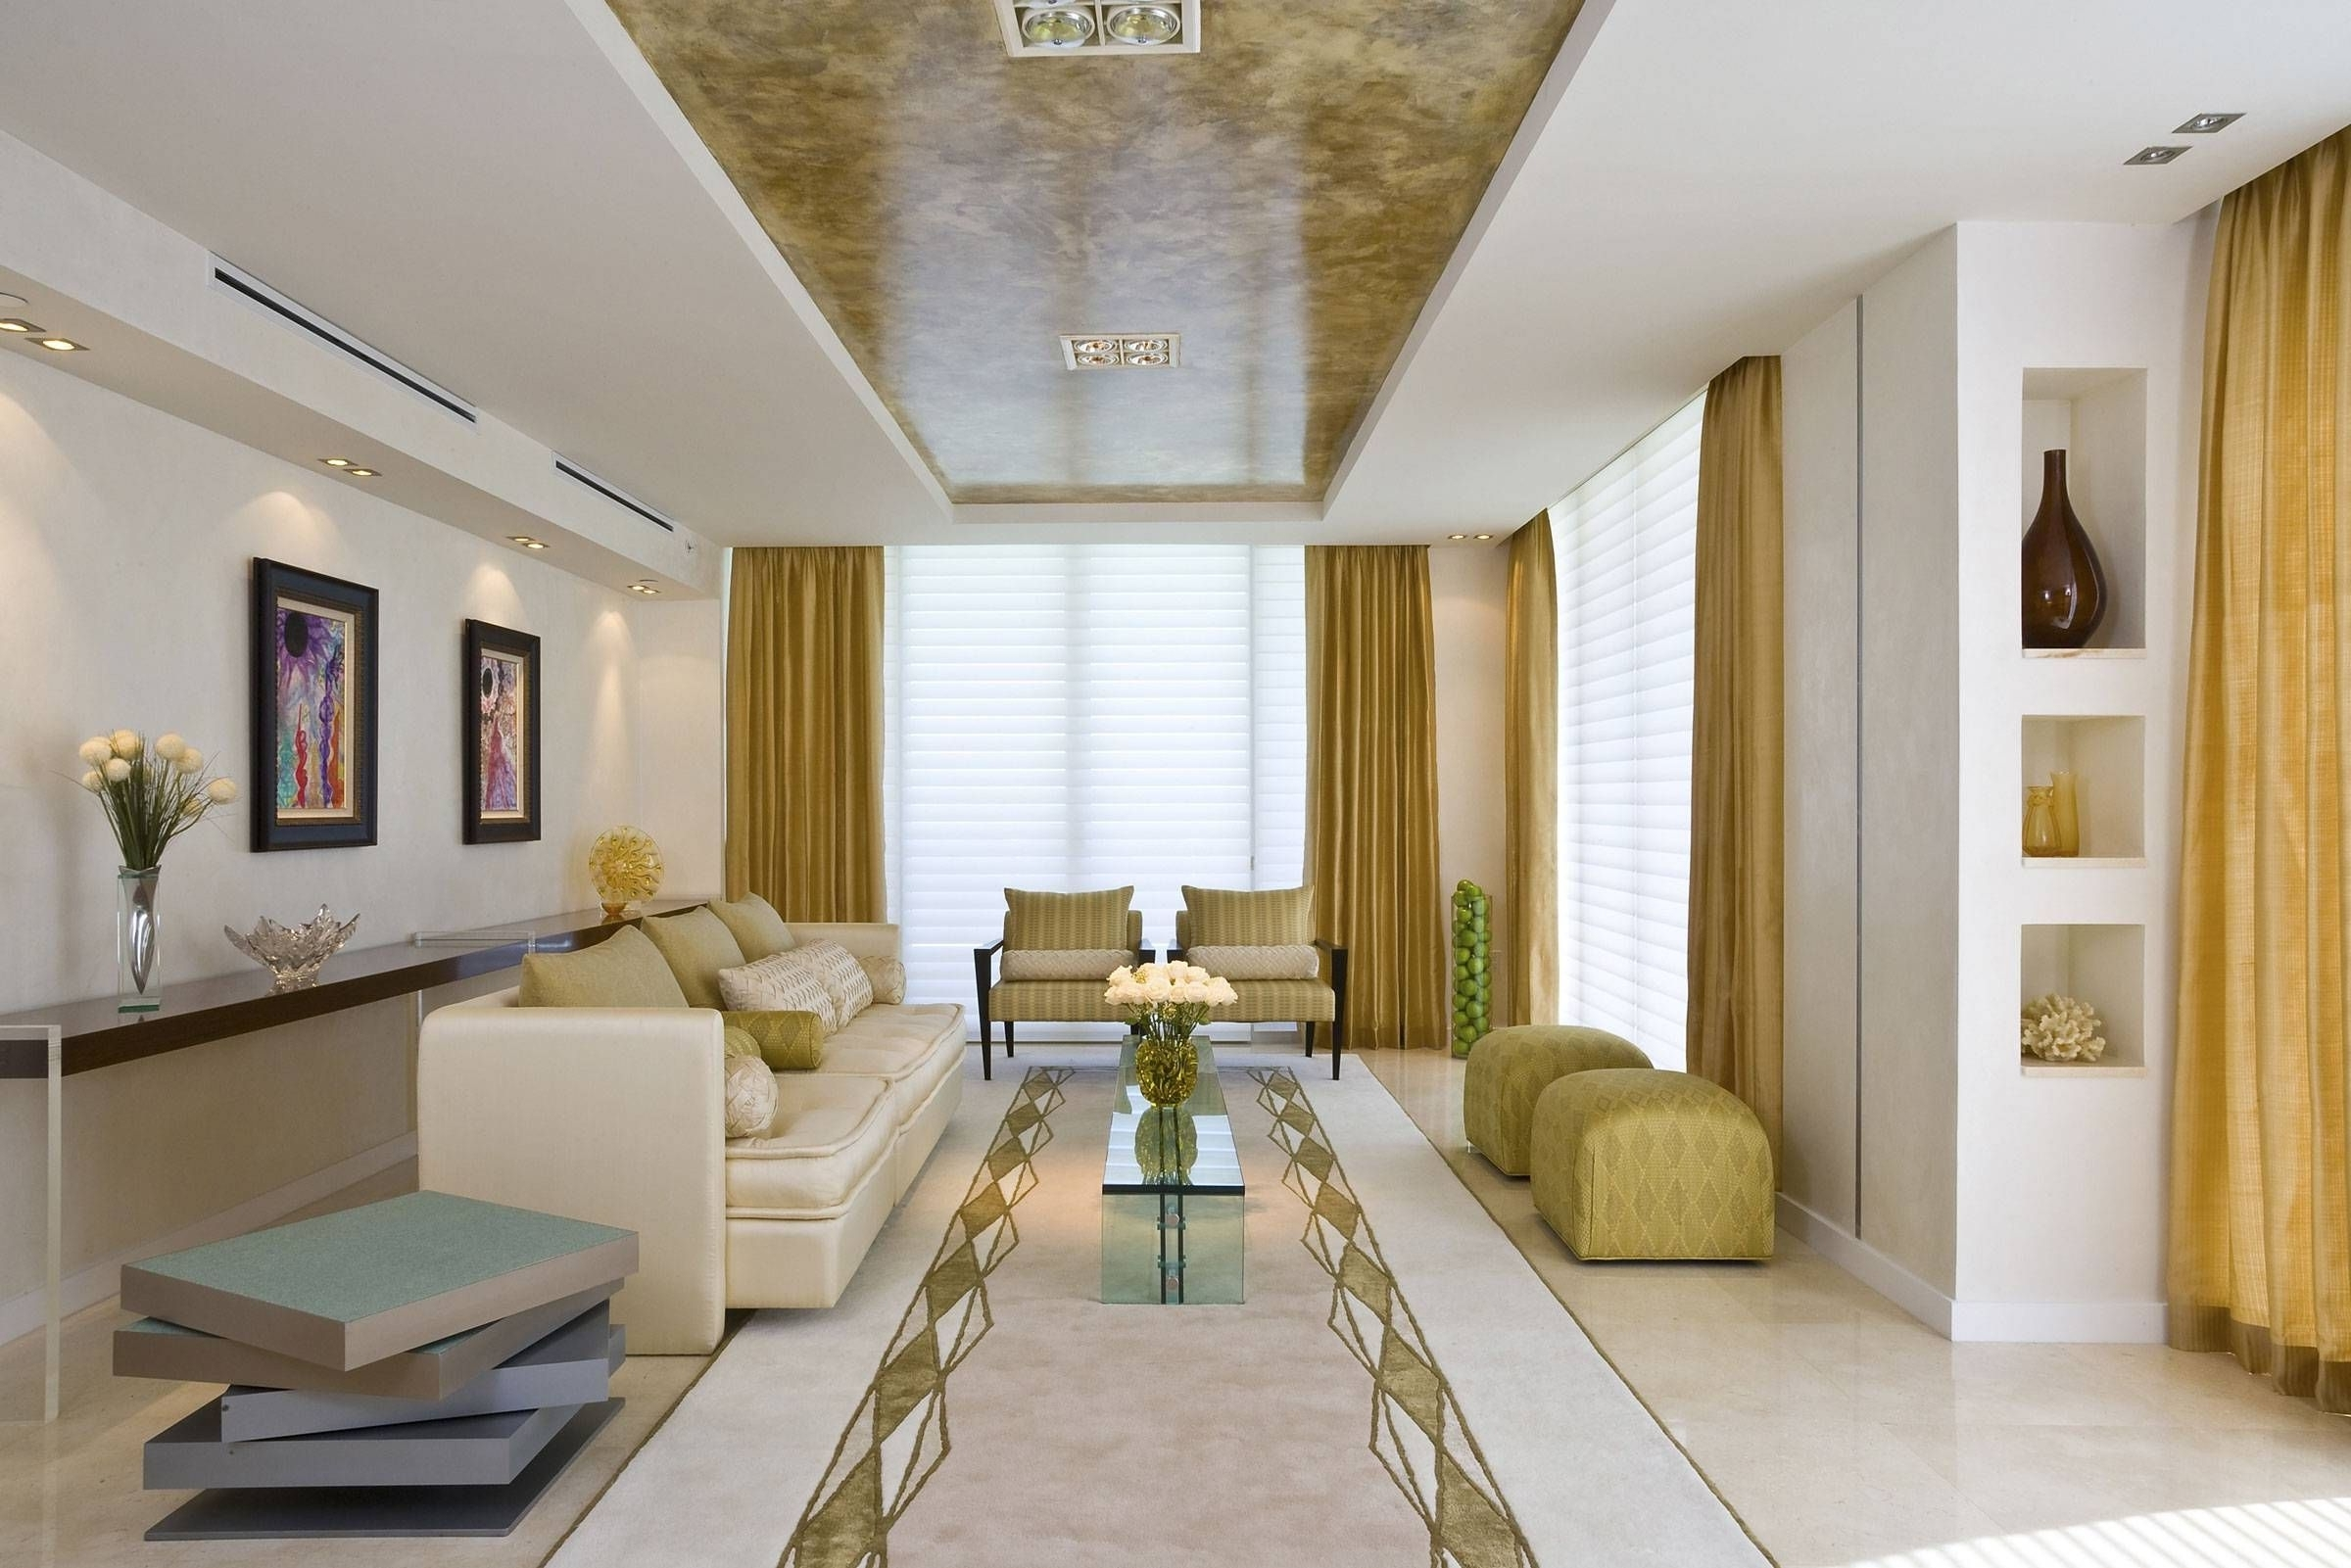 Long Narrow Family Room Layout With Gold Interior Design Trend And Regarding Favorite Wall Accents For Narrow Room (View 14 of 15)